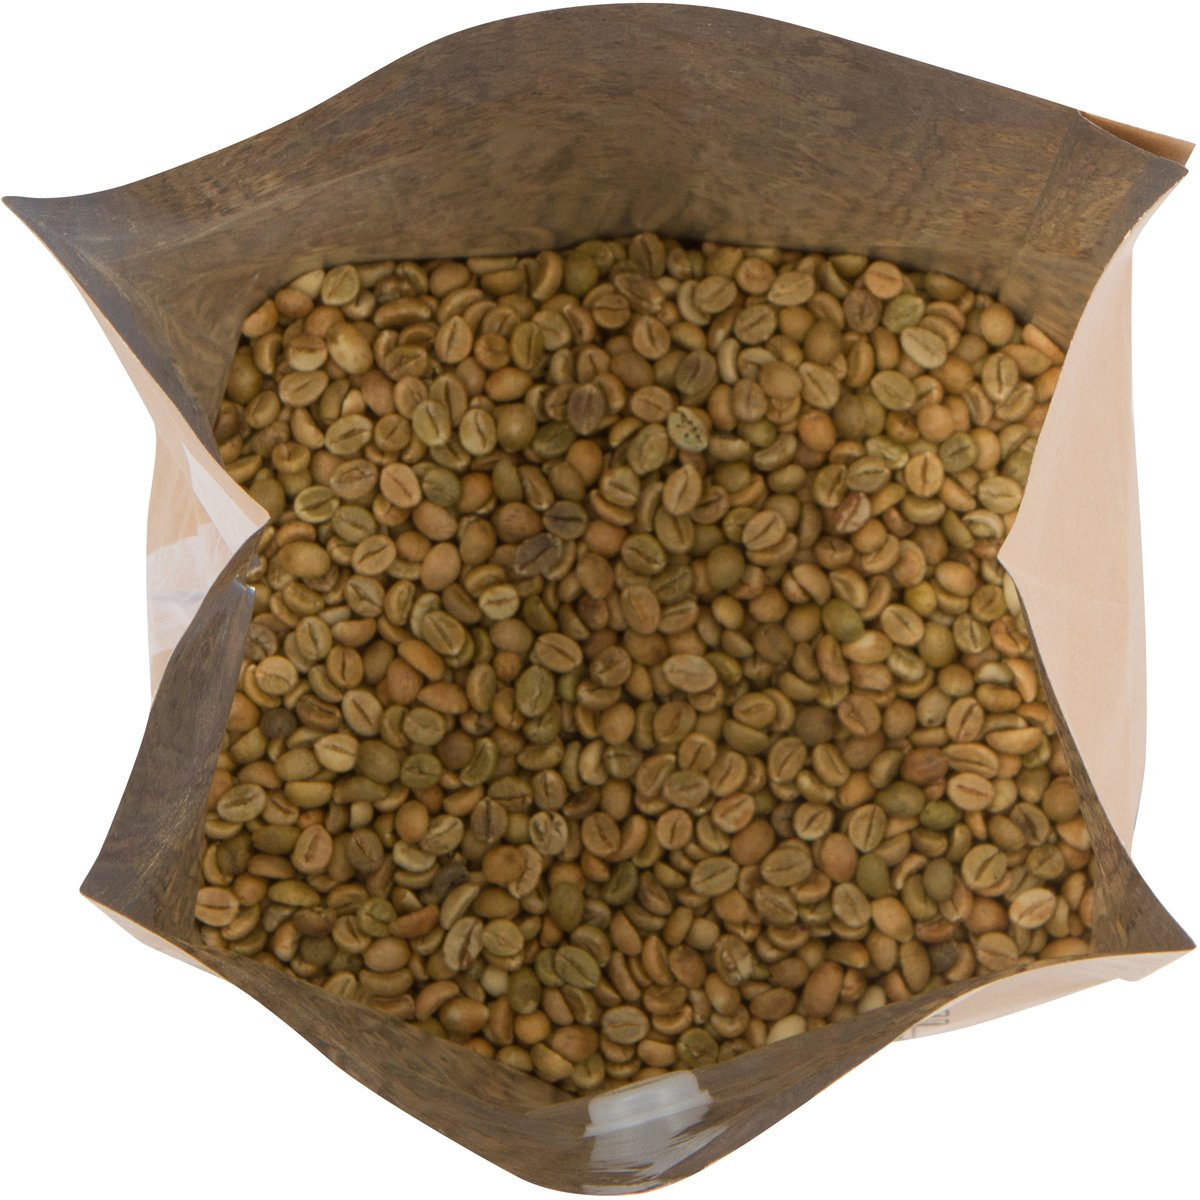 COLOMBIAN SUPREMO Unroasted Green Raw Coffee Beans, 5 LB Bulk Bag, 100% Arabica Top Grade Extra Large